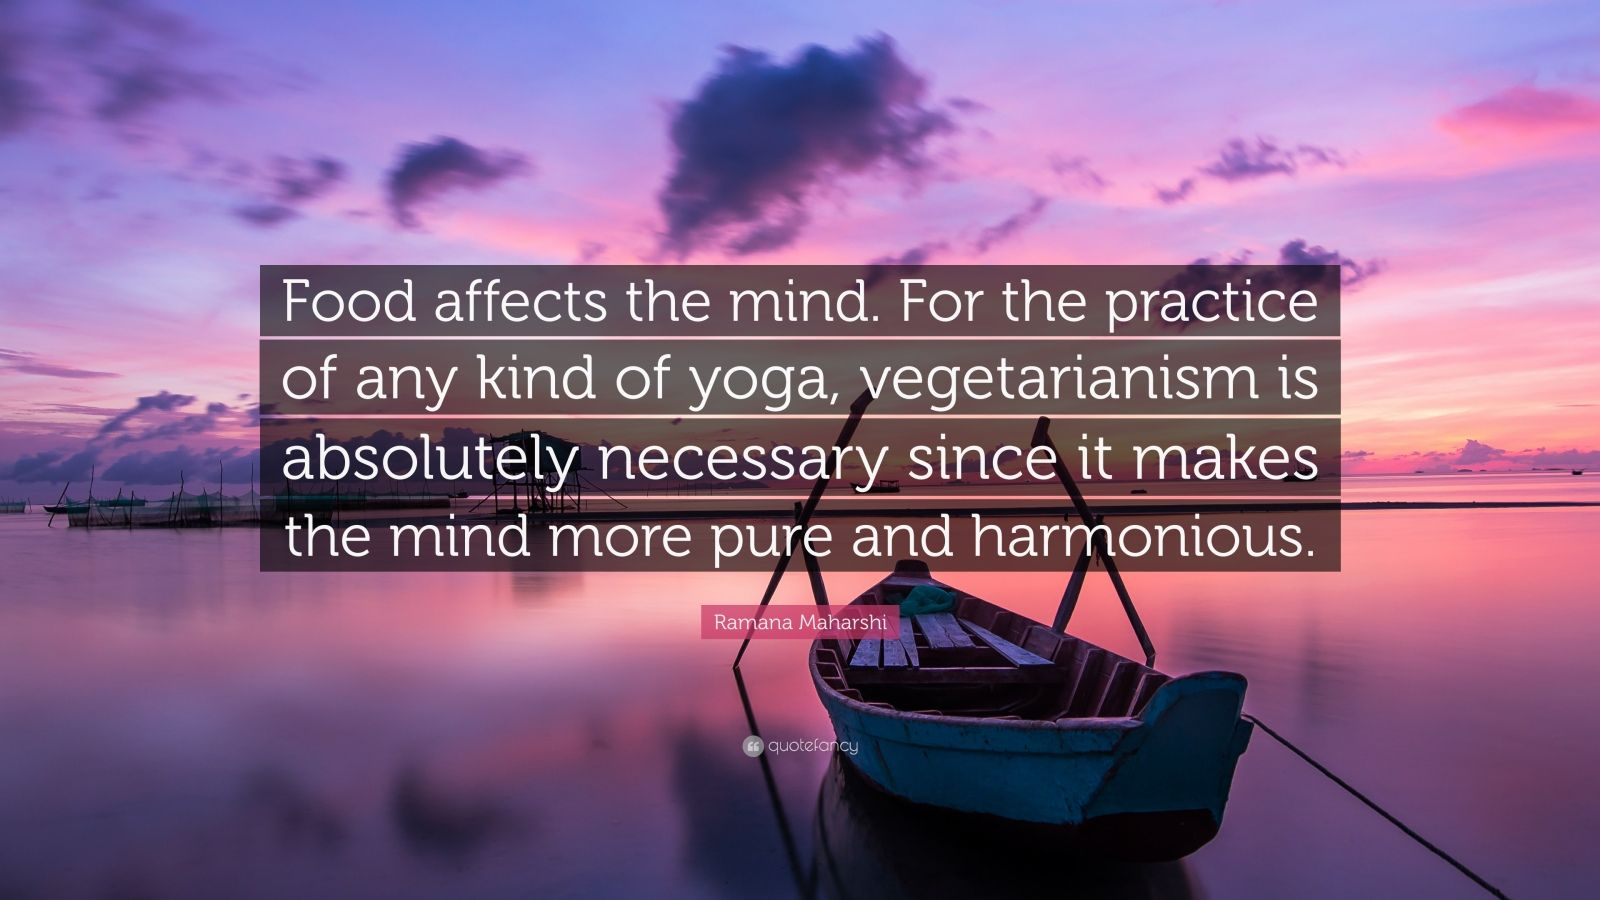 """Ramana Maharshi Quote: """"Food affects the mind. For the practice of any kind of yoga, vegetarianism is absolutely necessary since it makes the mind more pure and harmonious."""""""